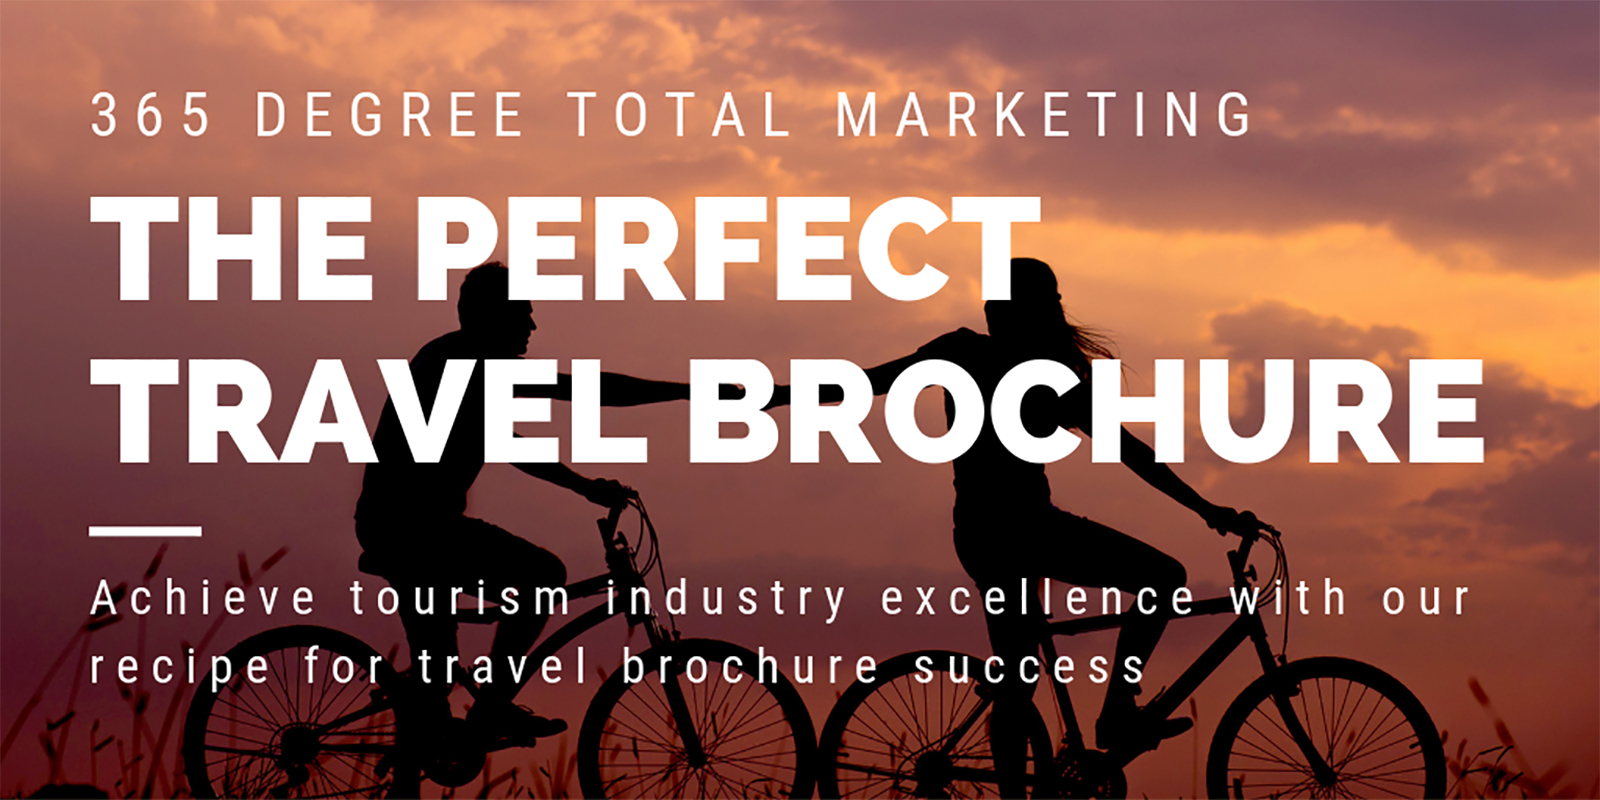 The Perfect Travel Brochure blog coverphoto